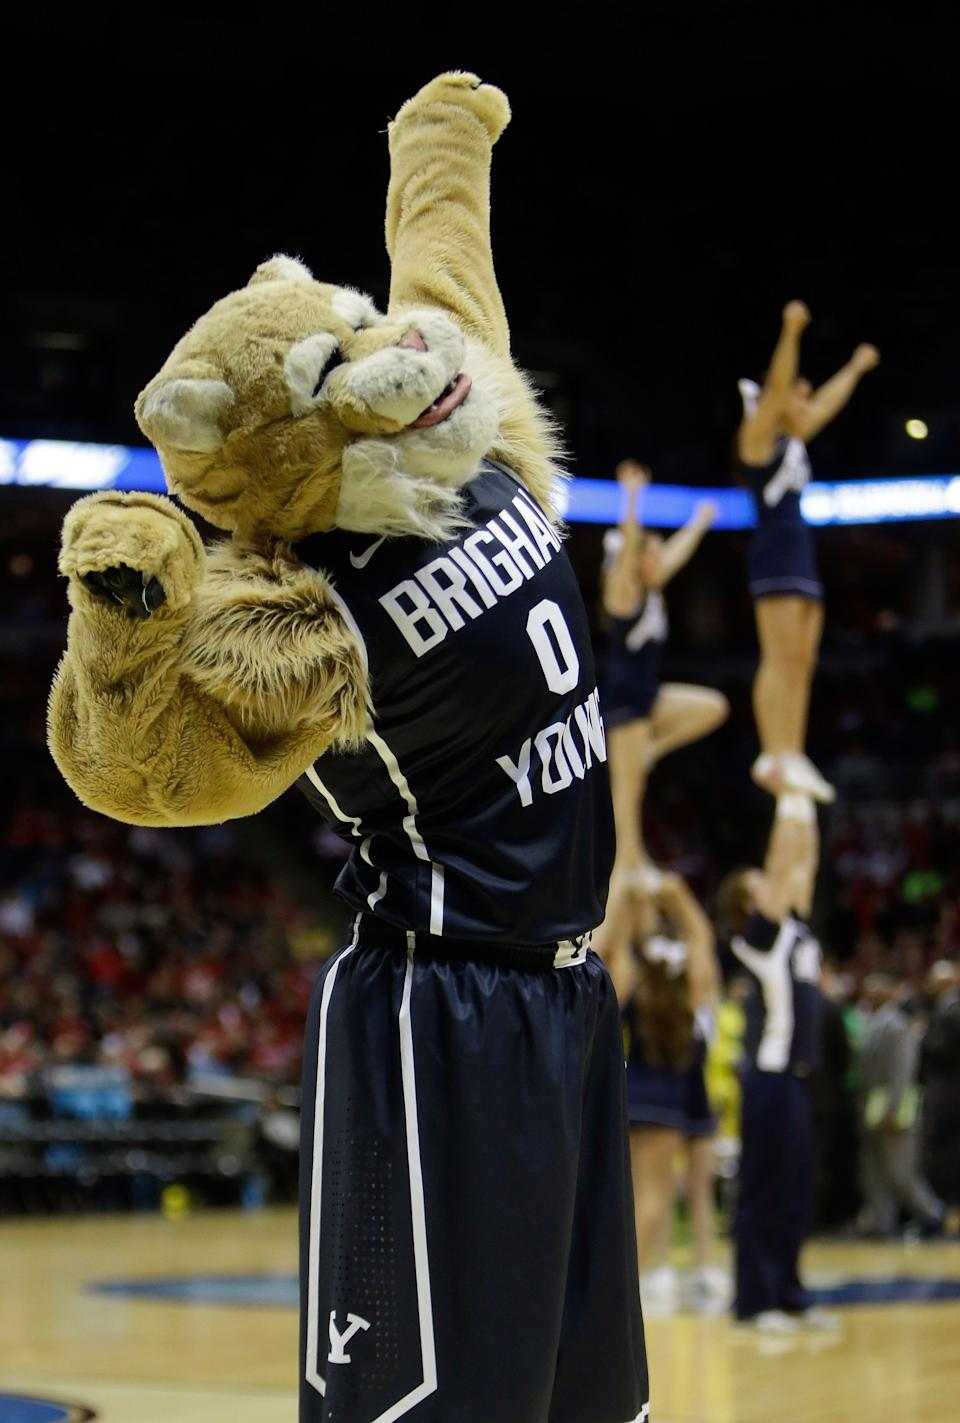 MILWAUKEE, WI - MARCH 20:  Brigham Young Cougars mascot Cosmo the Cougar performs during the second round game of the NCAA Basketball Tournament against the Oregon Ducks at BMO Harris Bradley Center on March 20, 2014 in Milwaukee, Wisconsin.  (Photo by Mike McGinnis/Getty Images)